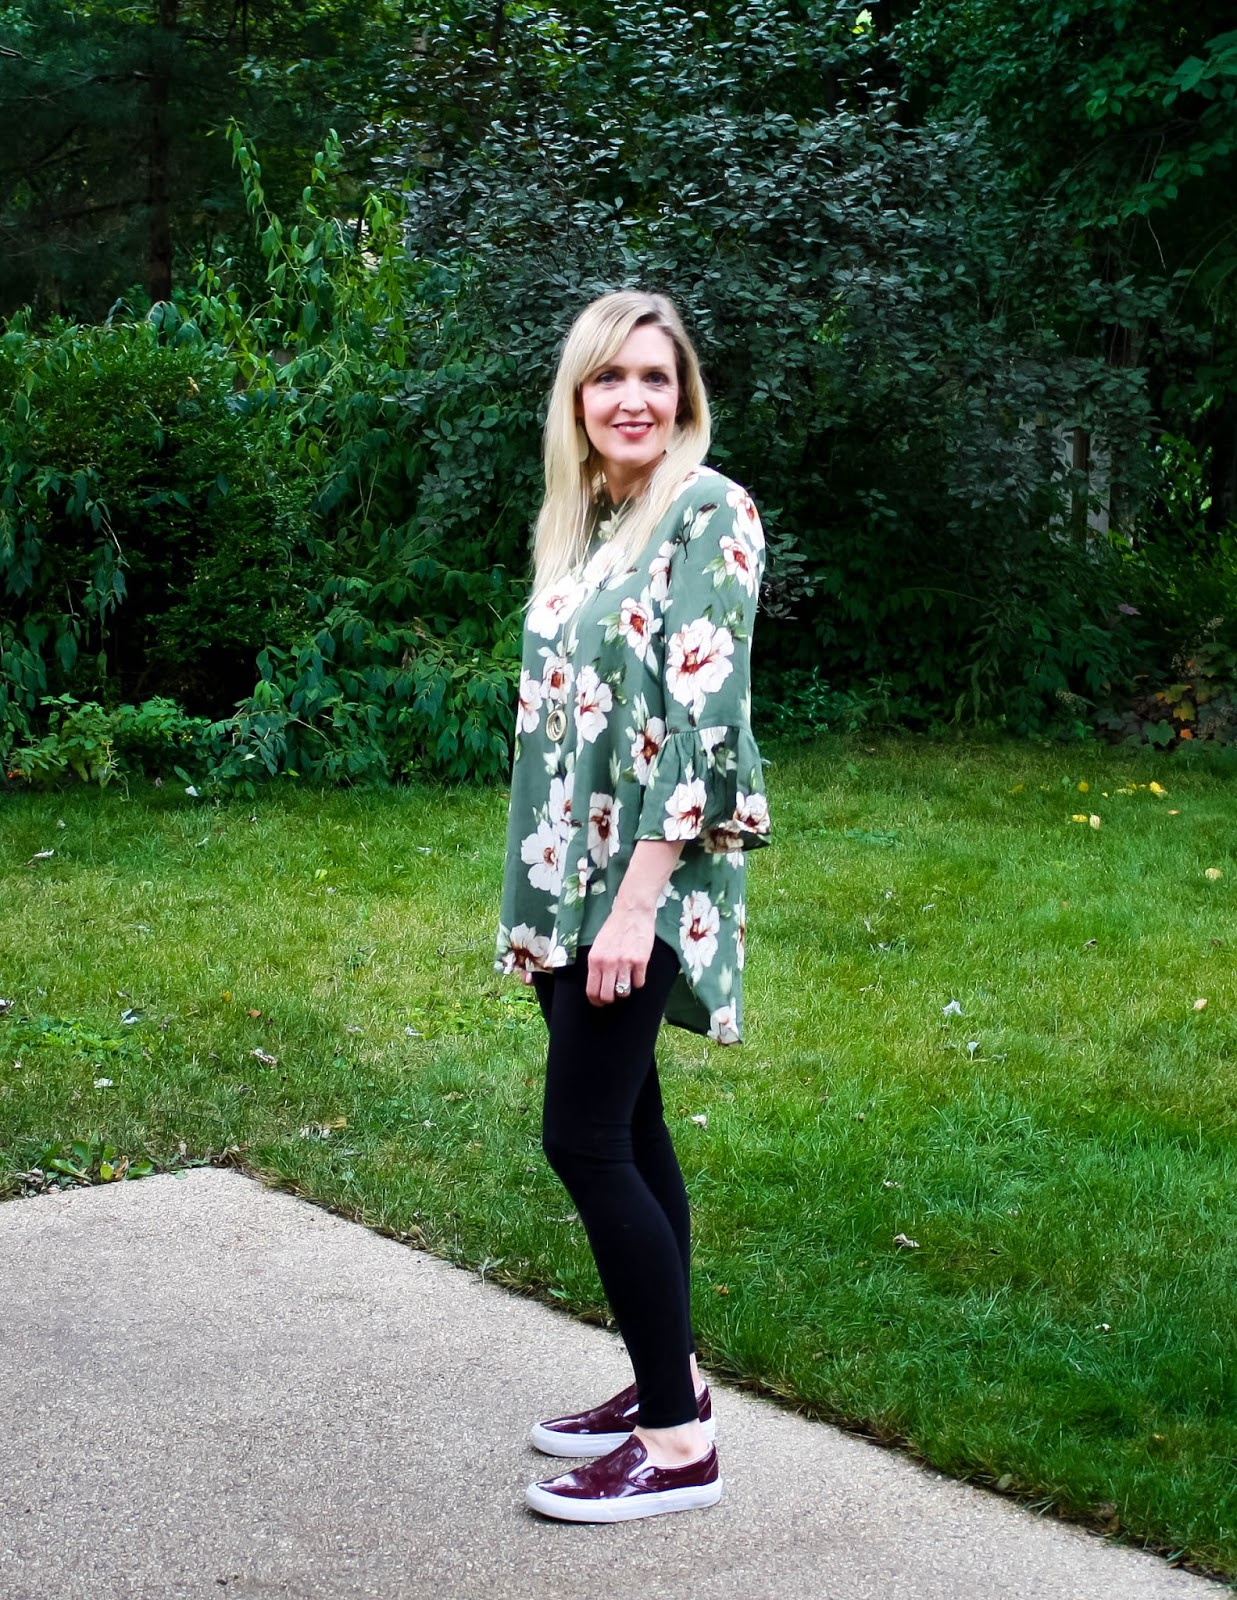 Travel Style: Olive Floral Tunic with Leggings and Burgundy Sneakers